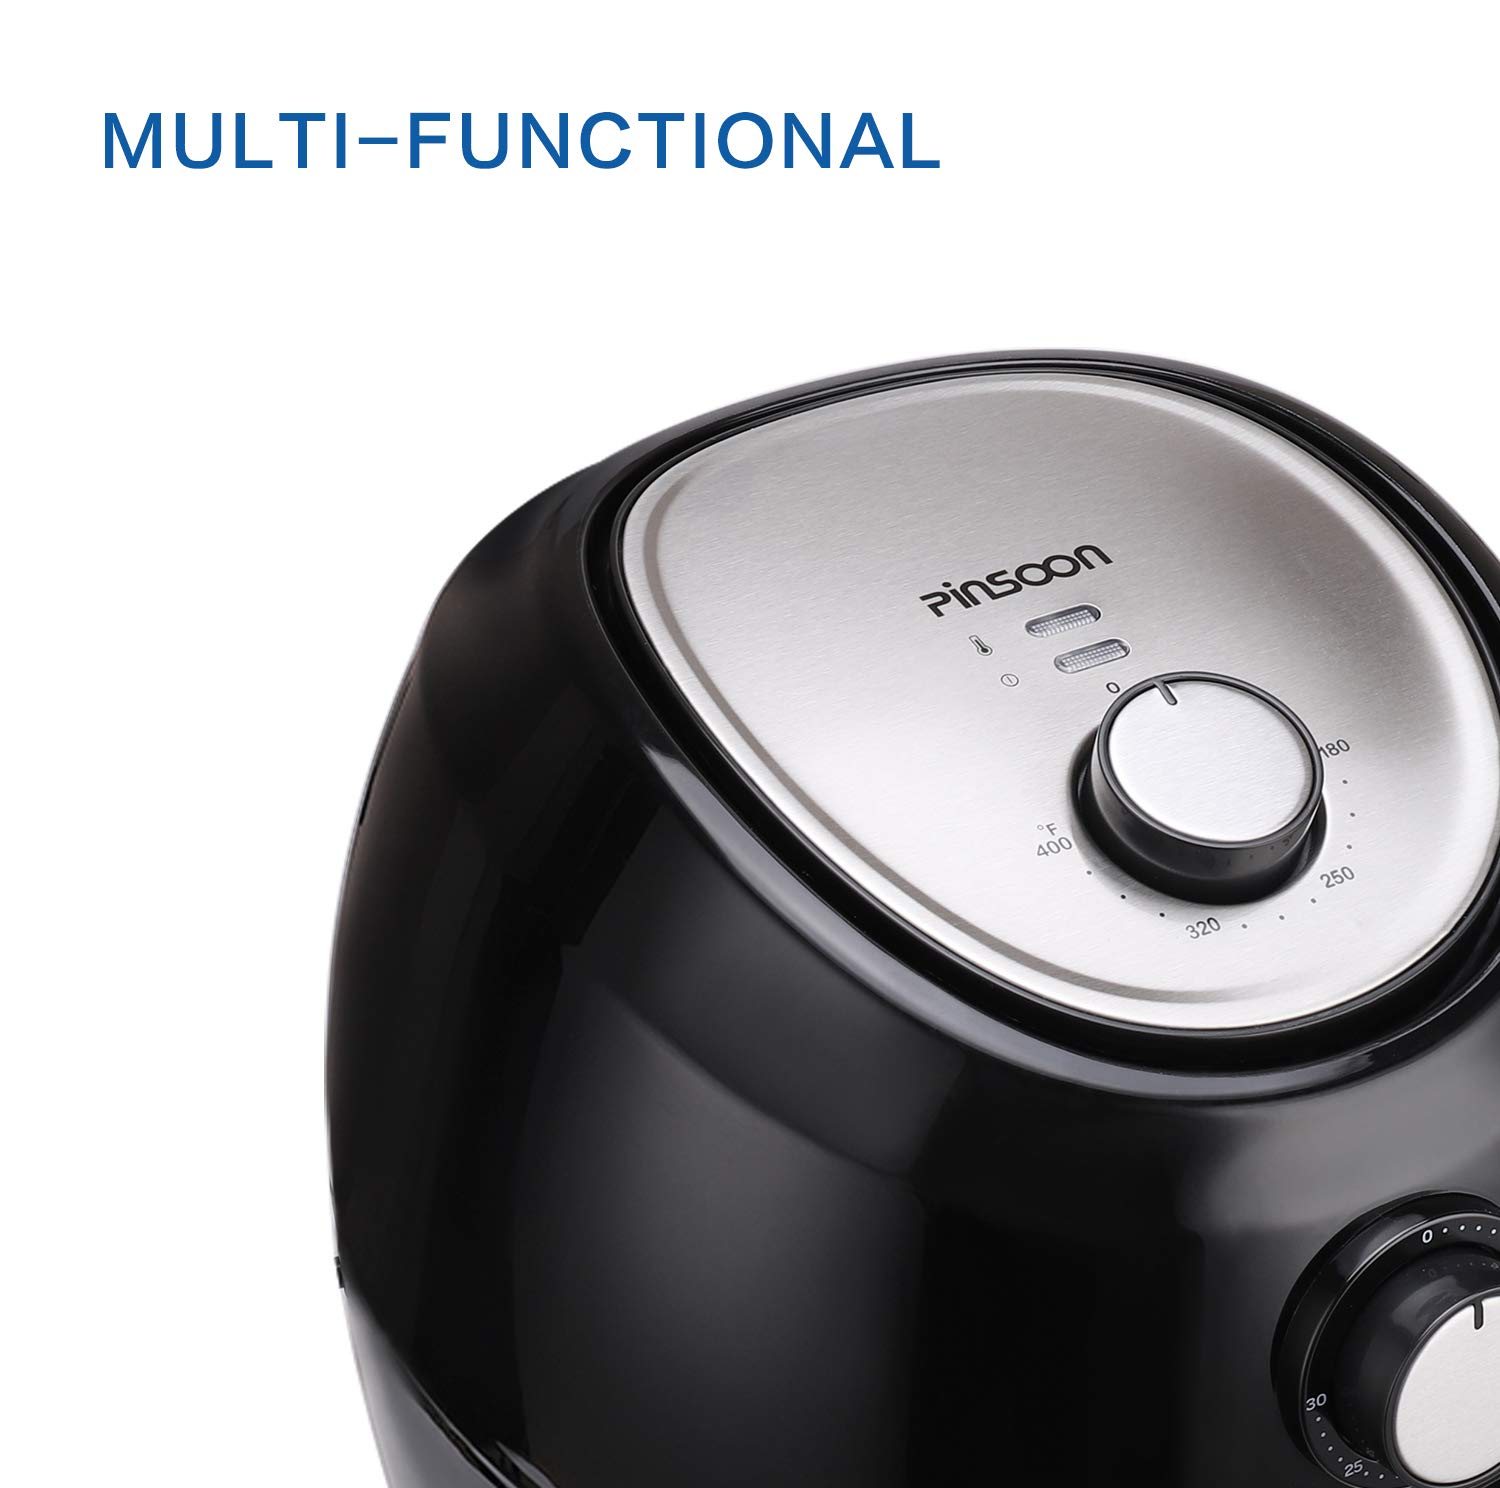 Air Fryer, Pinsoon Hot Air Fryer 5.8 QT 1700W with Auto Shut-off, Temperature and Time Control, Free Recipe for Health Cooking